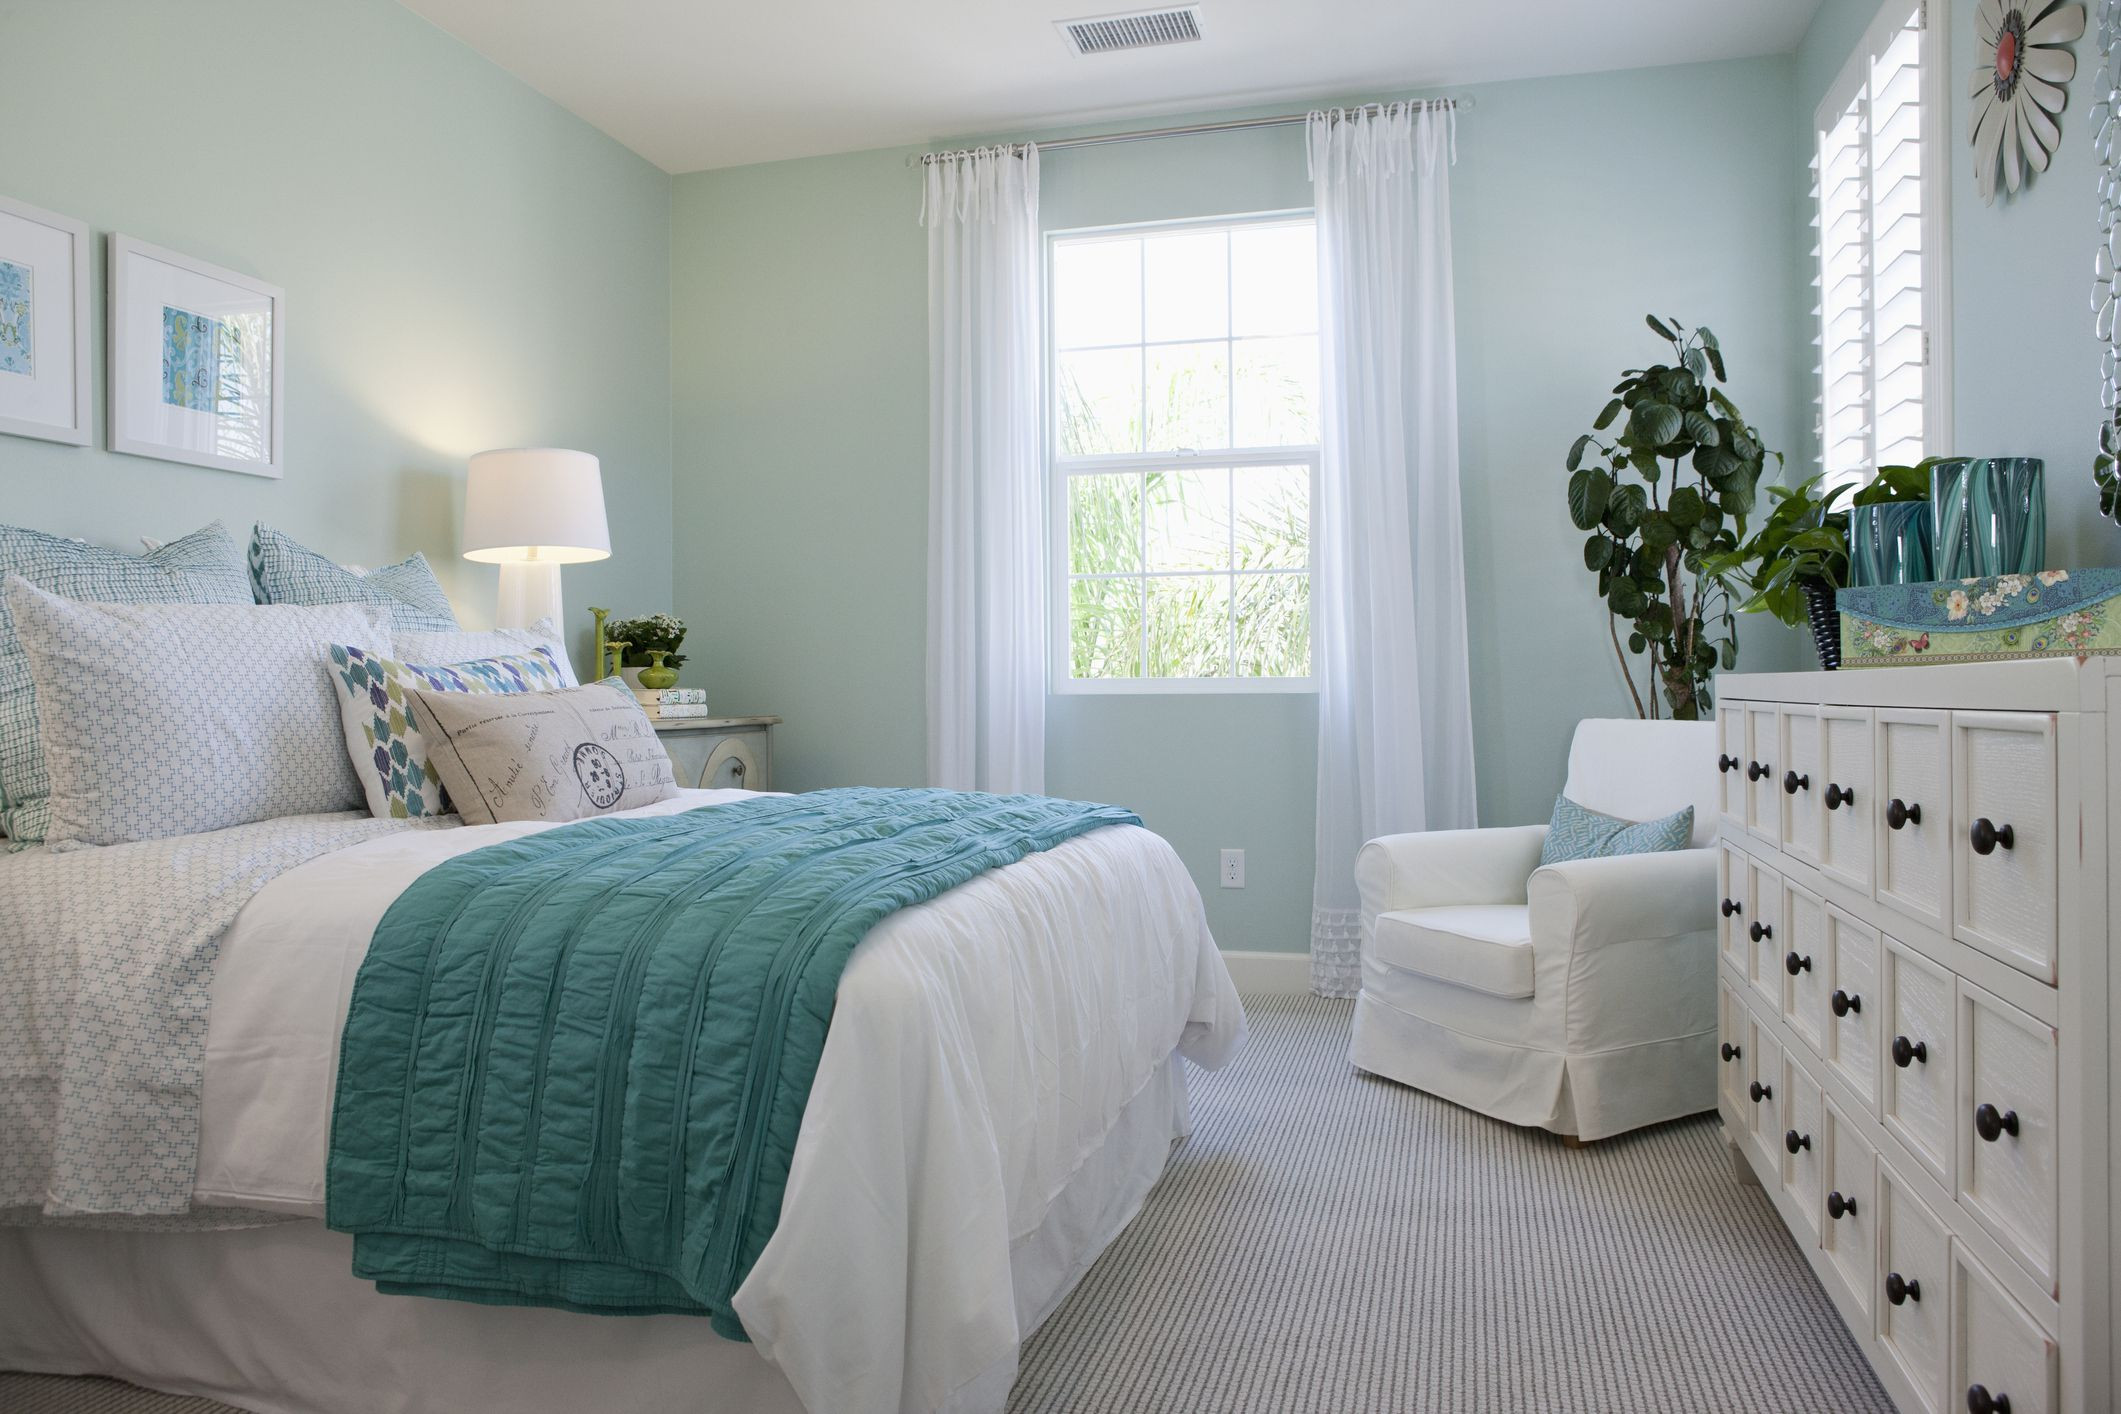 Best Color For Bedroom  How to Choose the Right Paint Colors for Your Bedroom